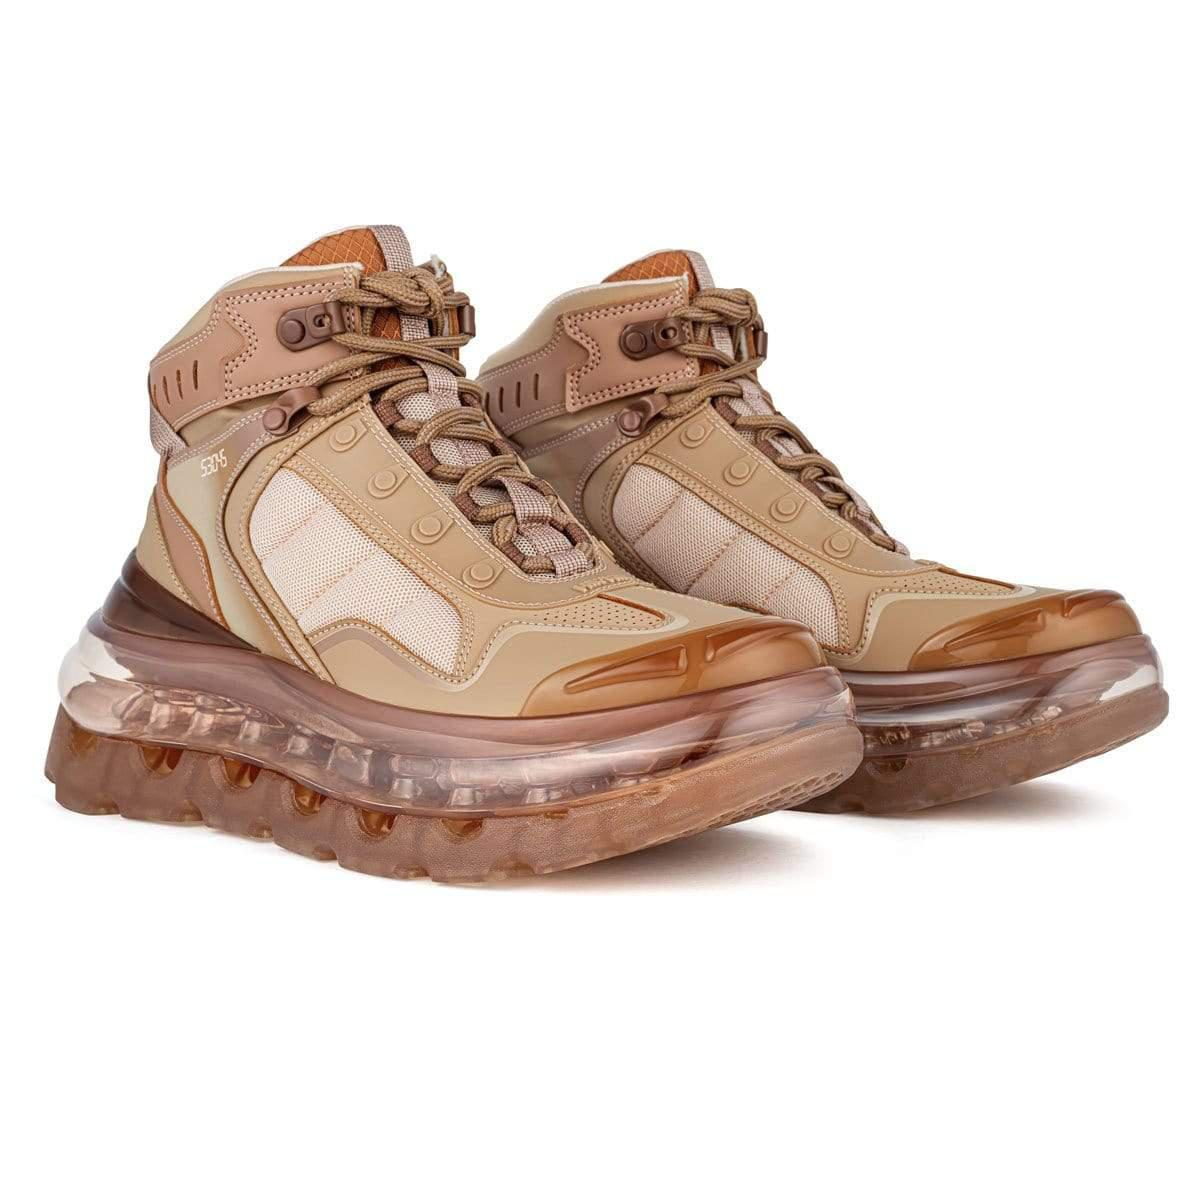 HIK'AIR EARTH Hiking Style Sneaker Boots